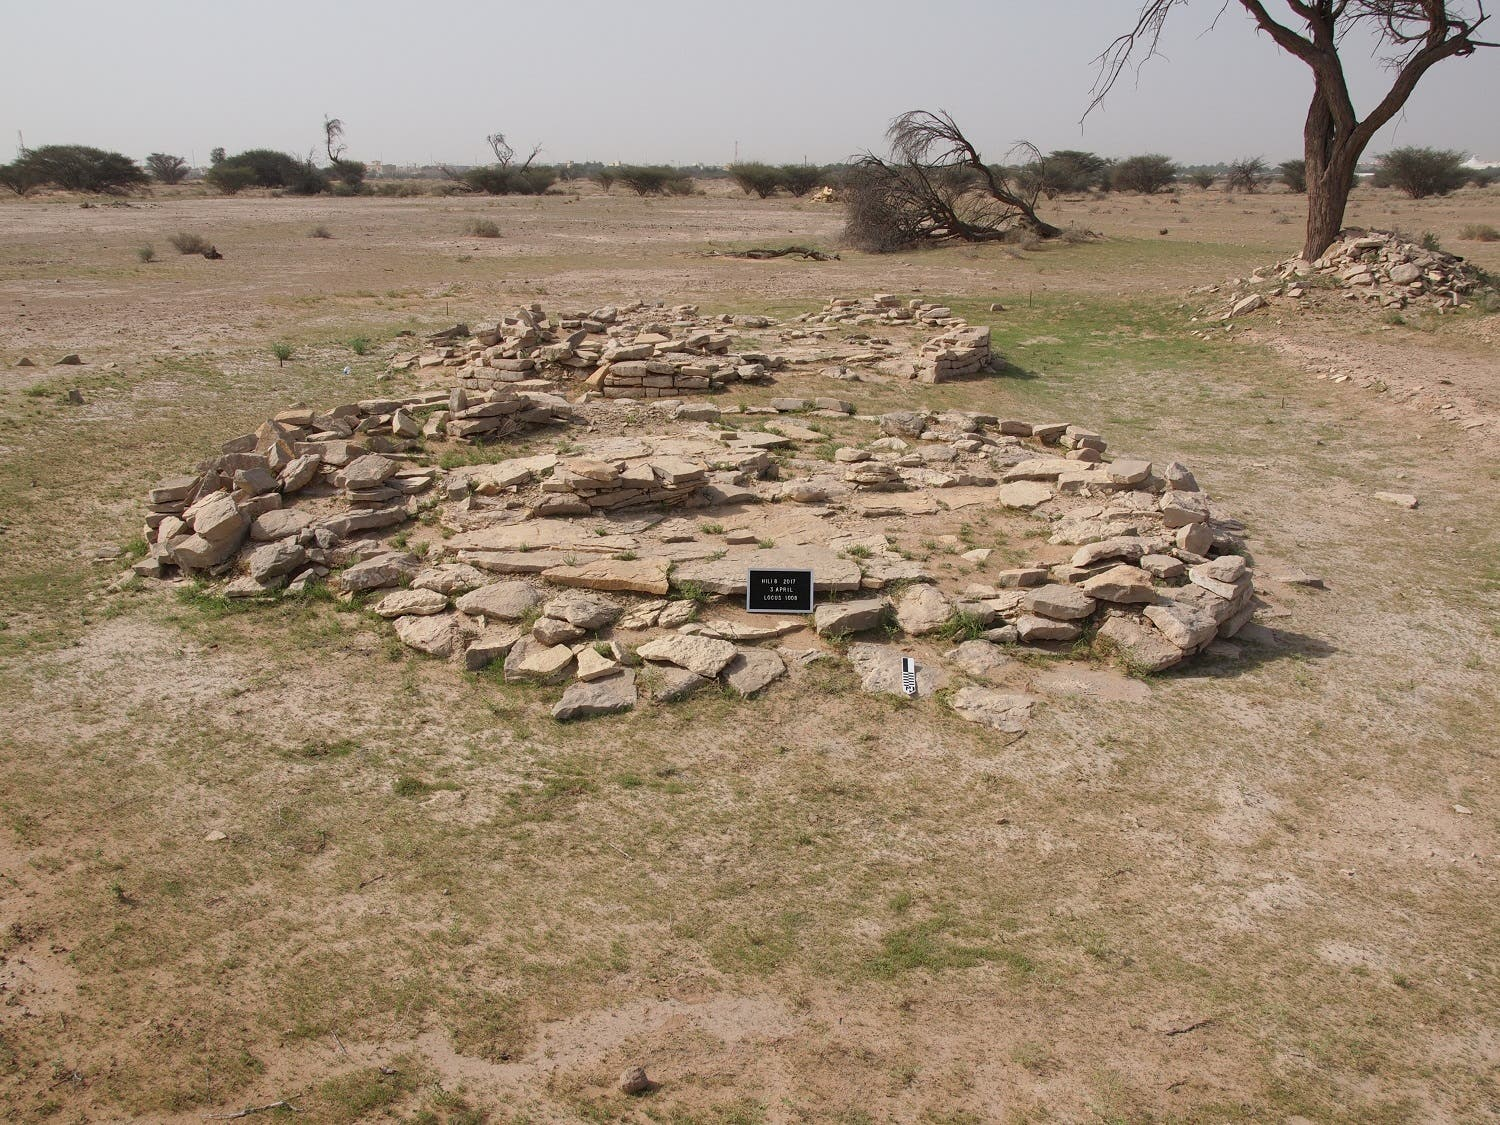 Two of the Bronze Age tombs located near Hili 8. The people who lived at Hili 8 were buried collectively in these tombs. (TCA Abu Dhabi)